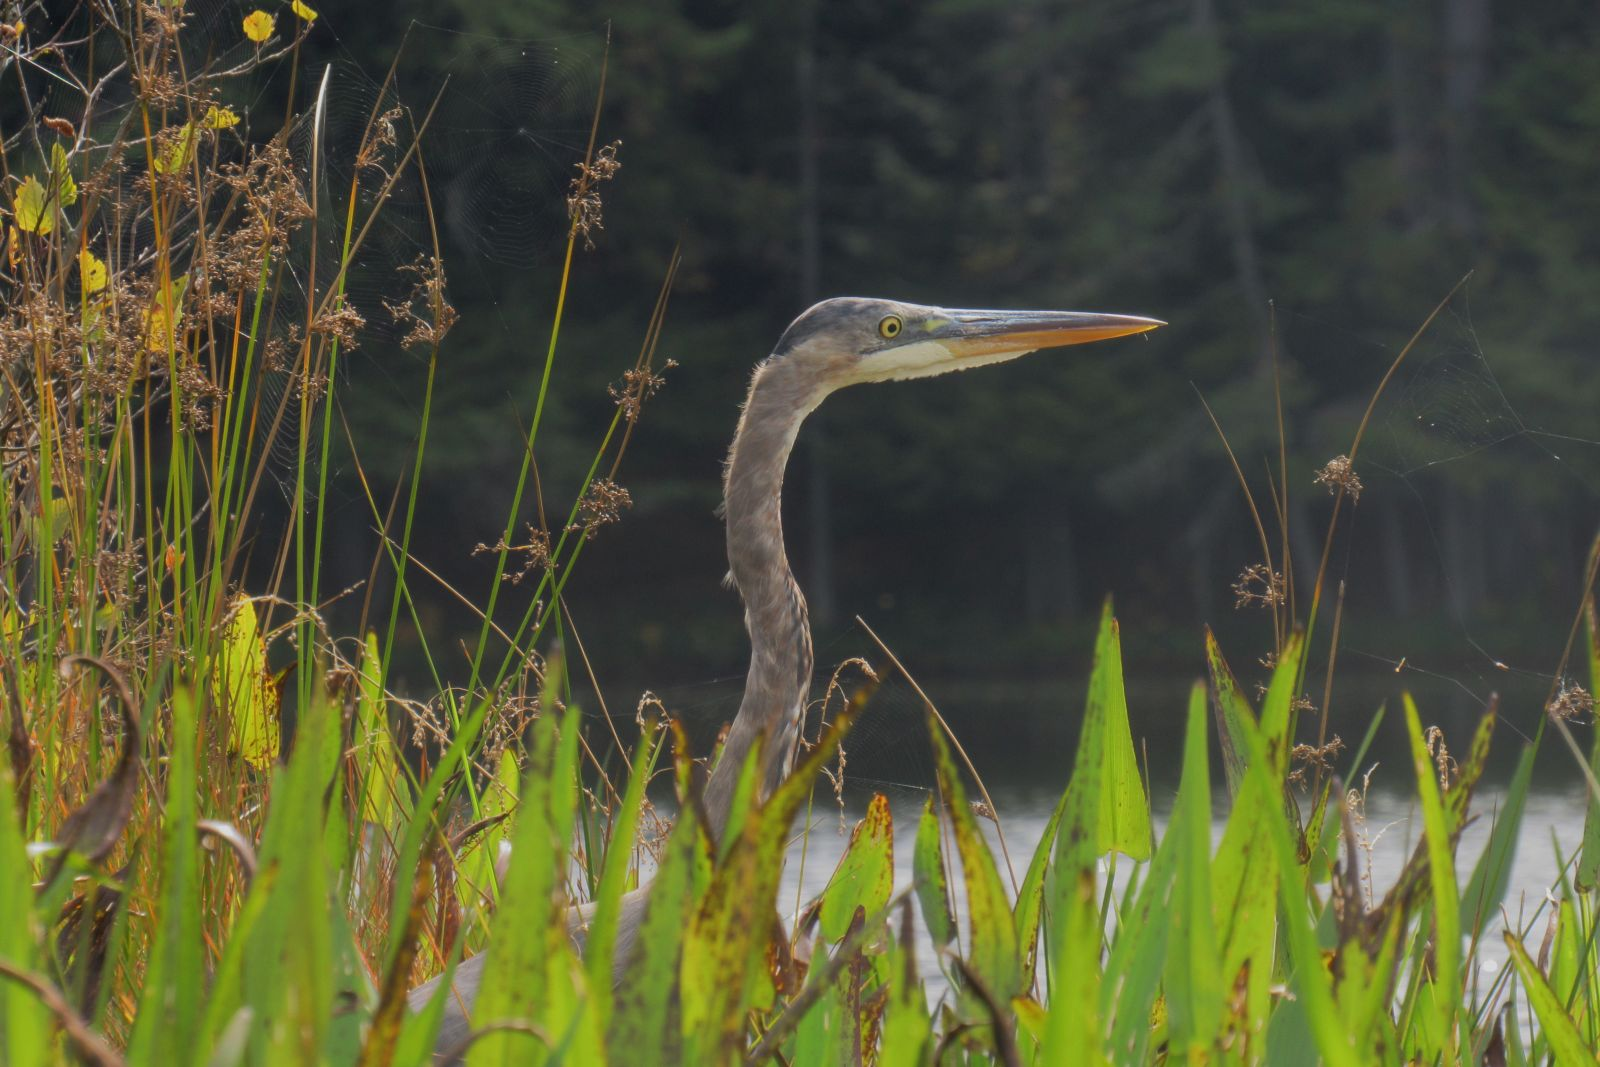 This Blue Heron thought he was hiding!